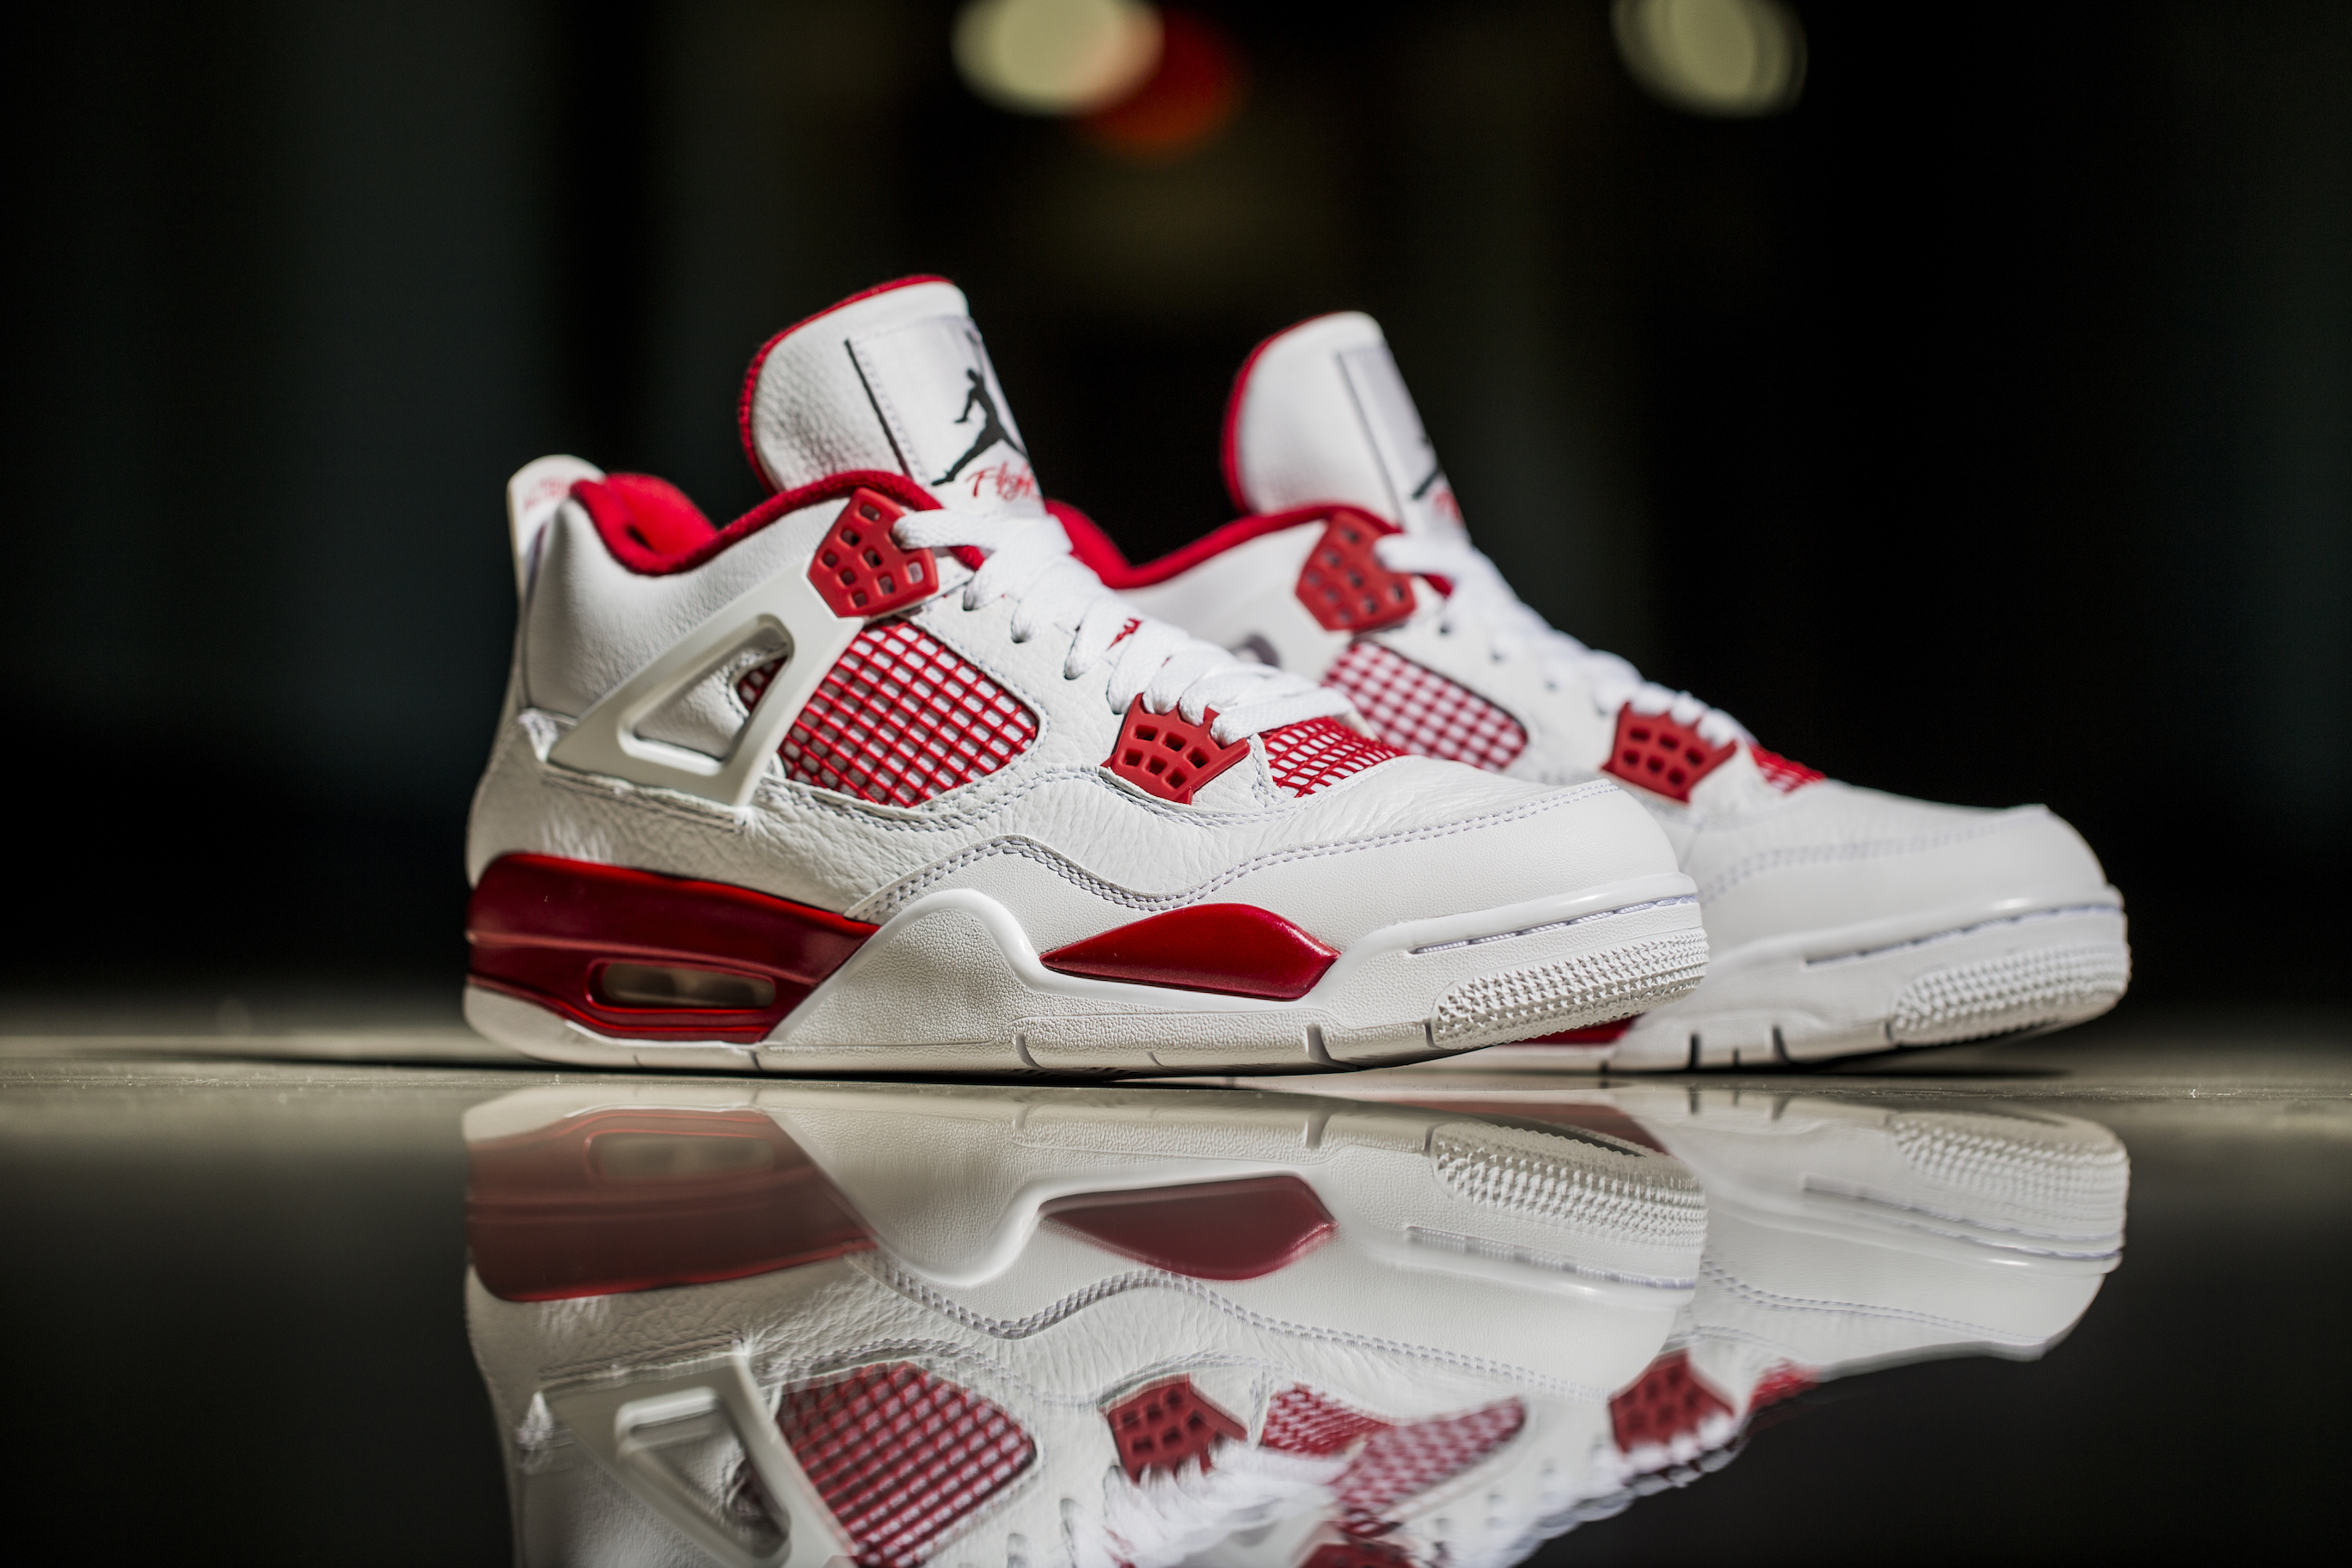 Get Your Best Look at the Air Jordan IV 'Alternate 89'-7